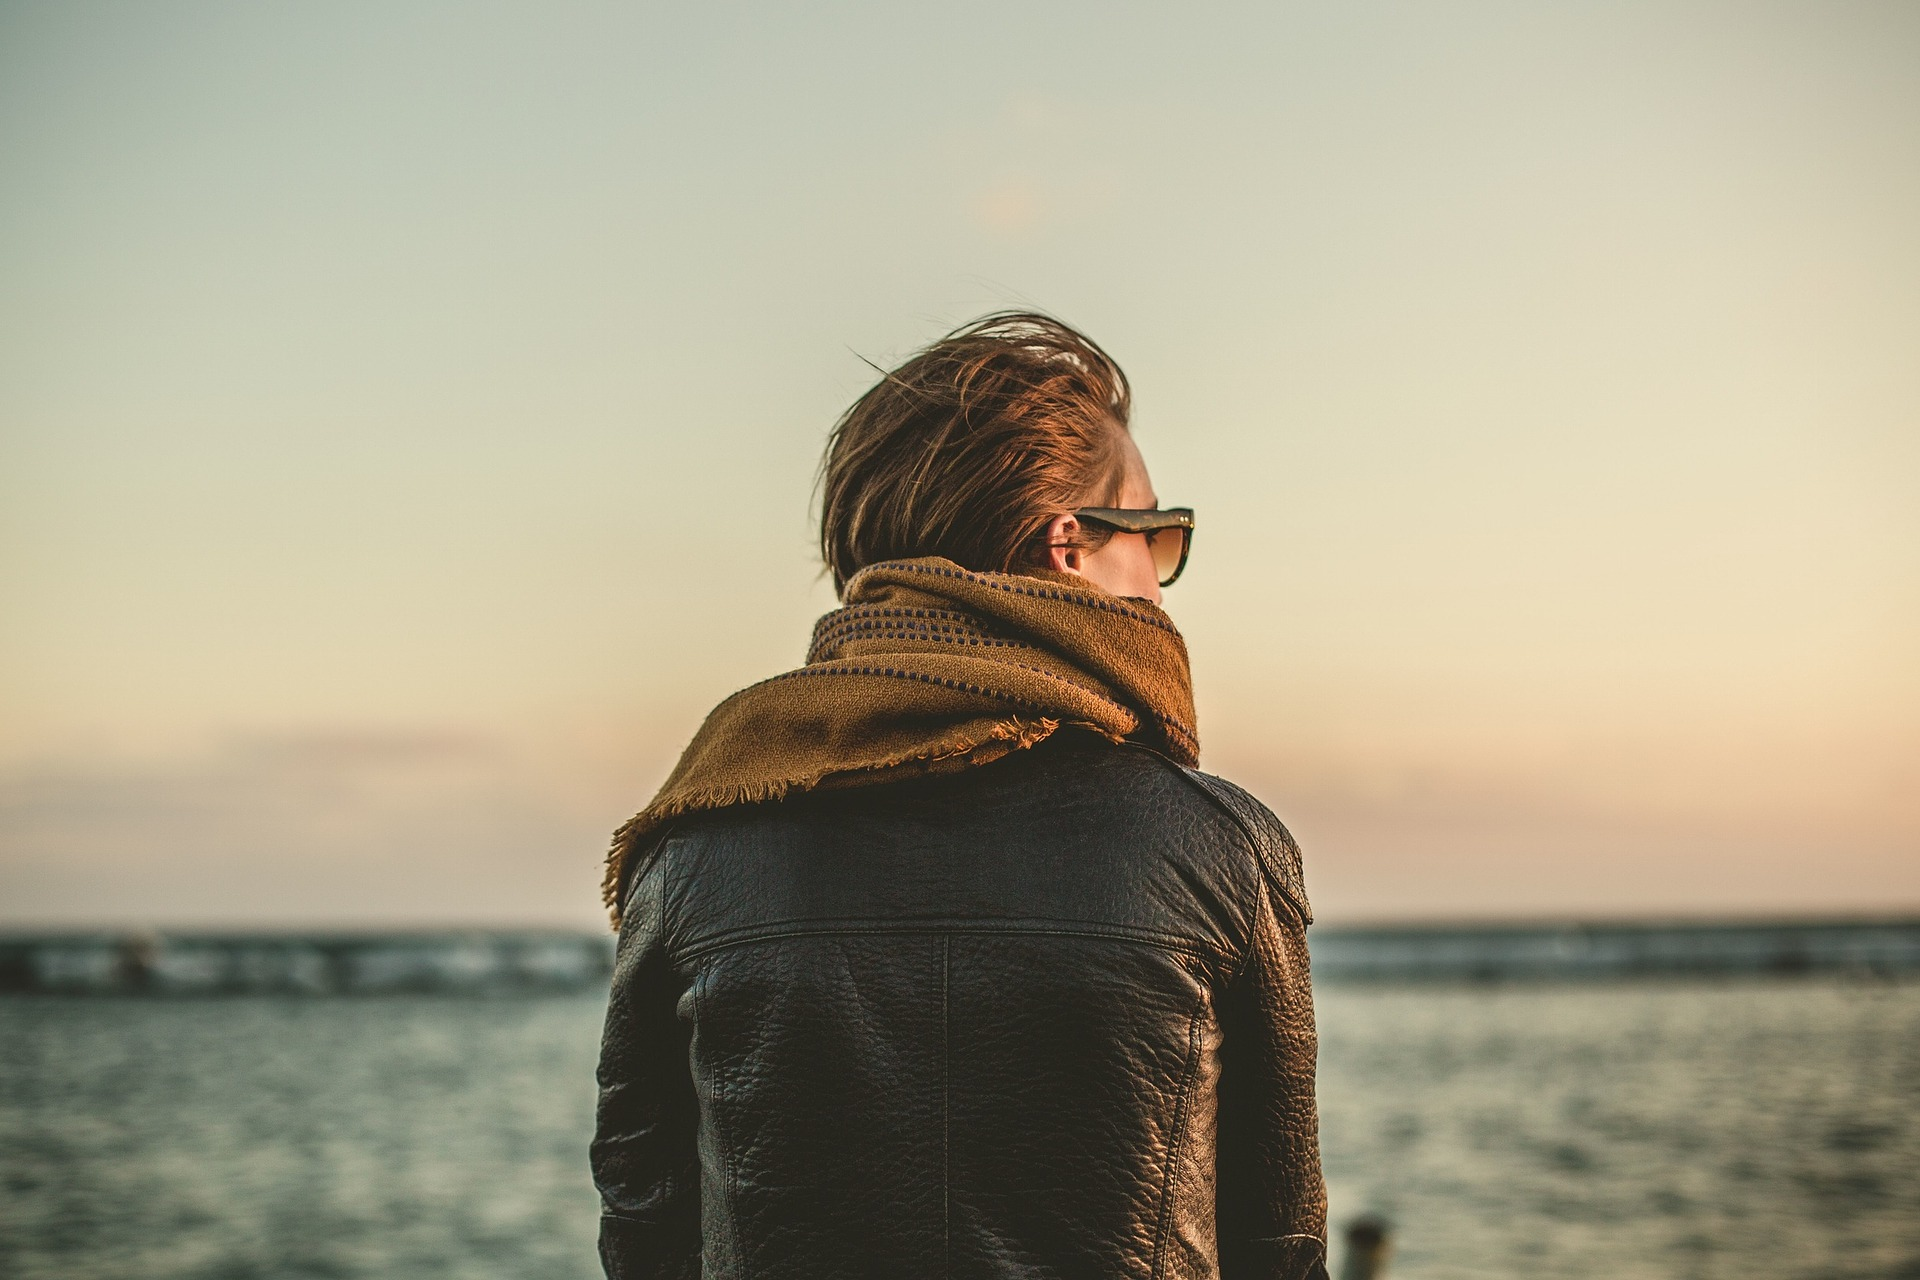 Back of person wearing a leather jacket and scarf while looking at the ocean